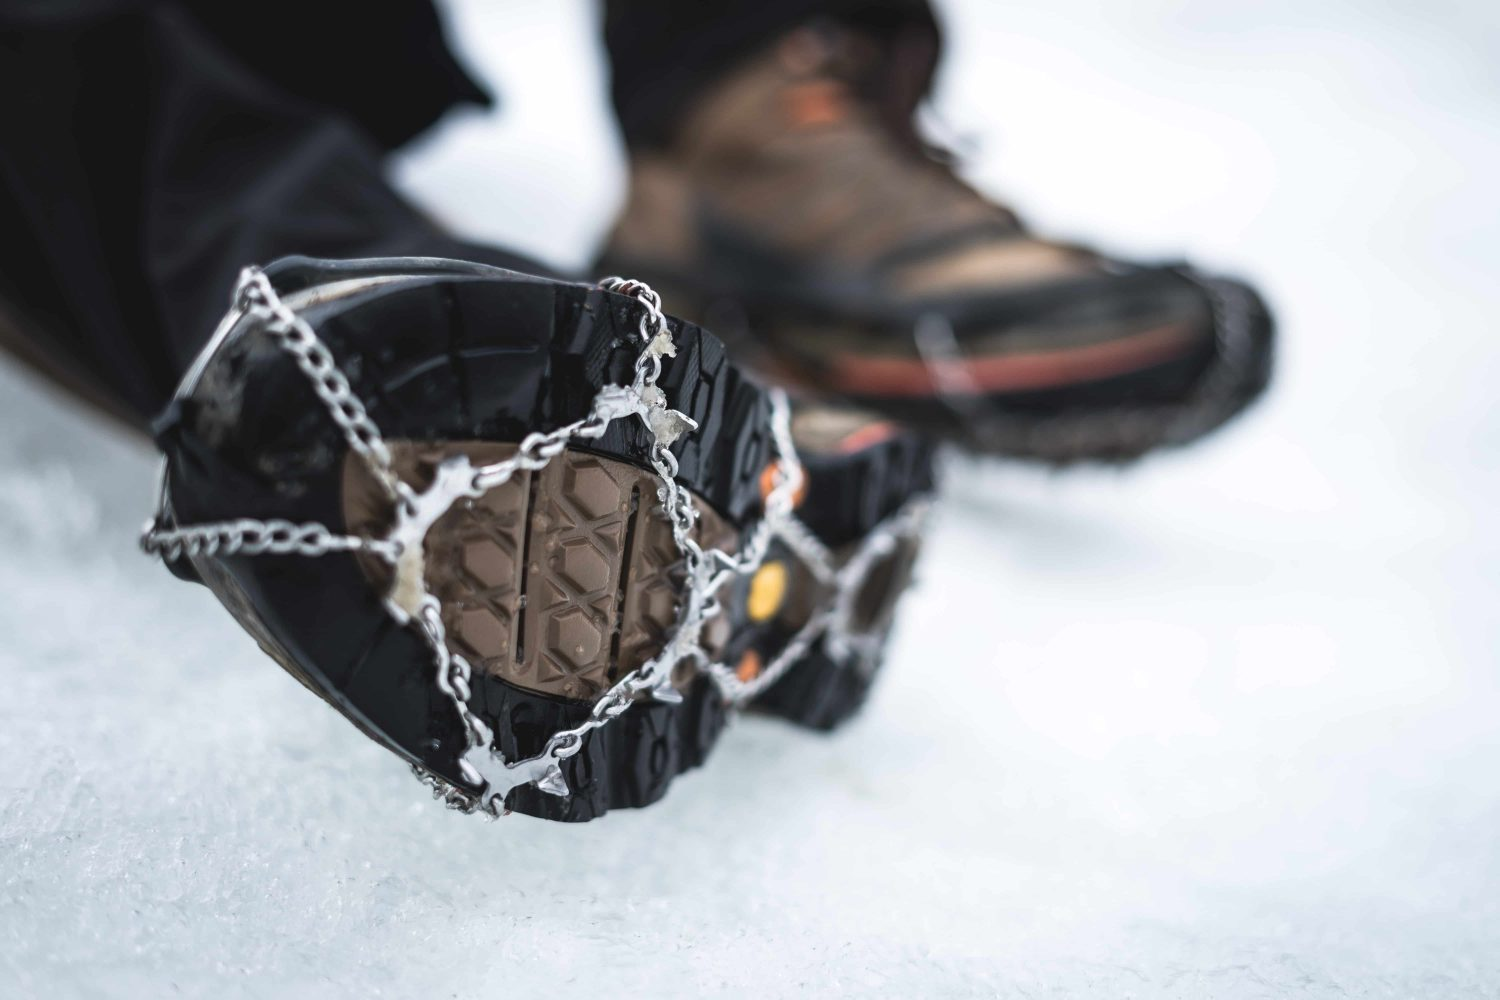 Crampons, Ice Cleats